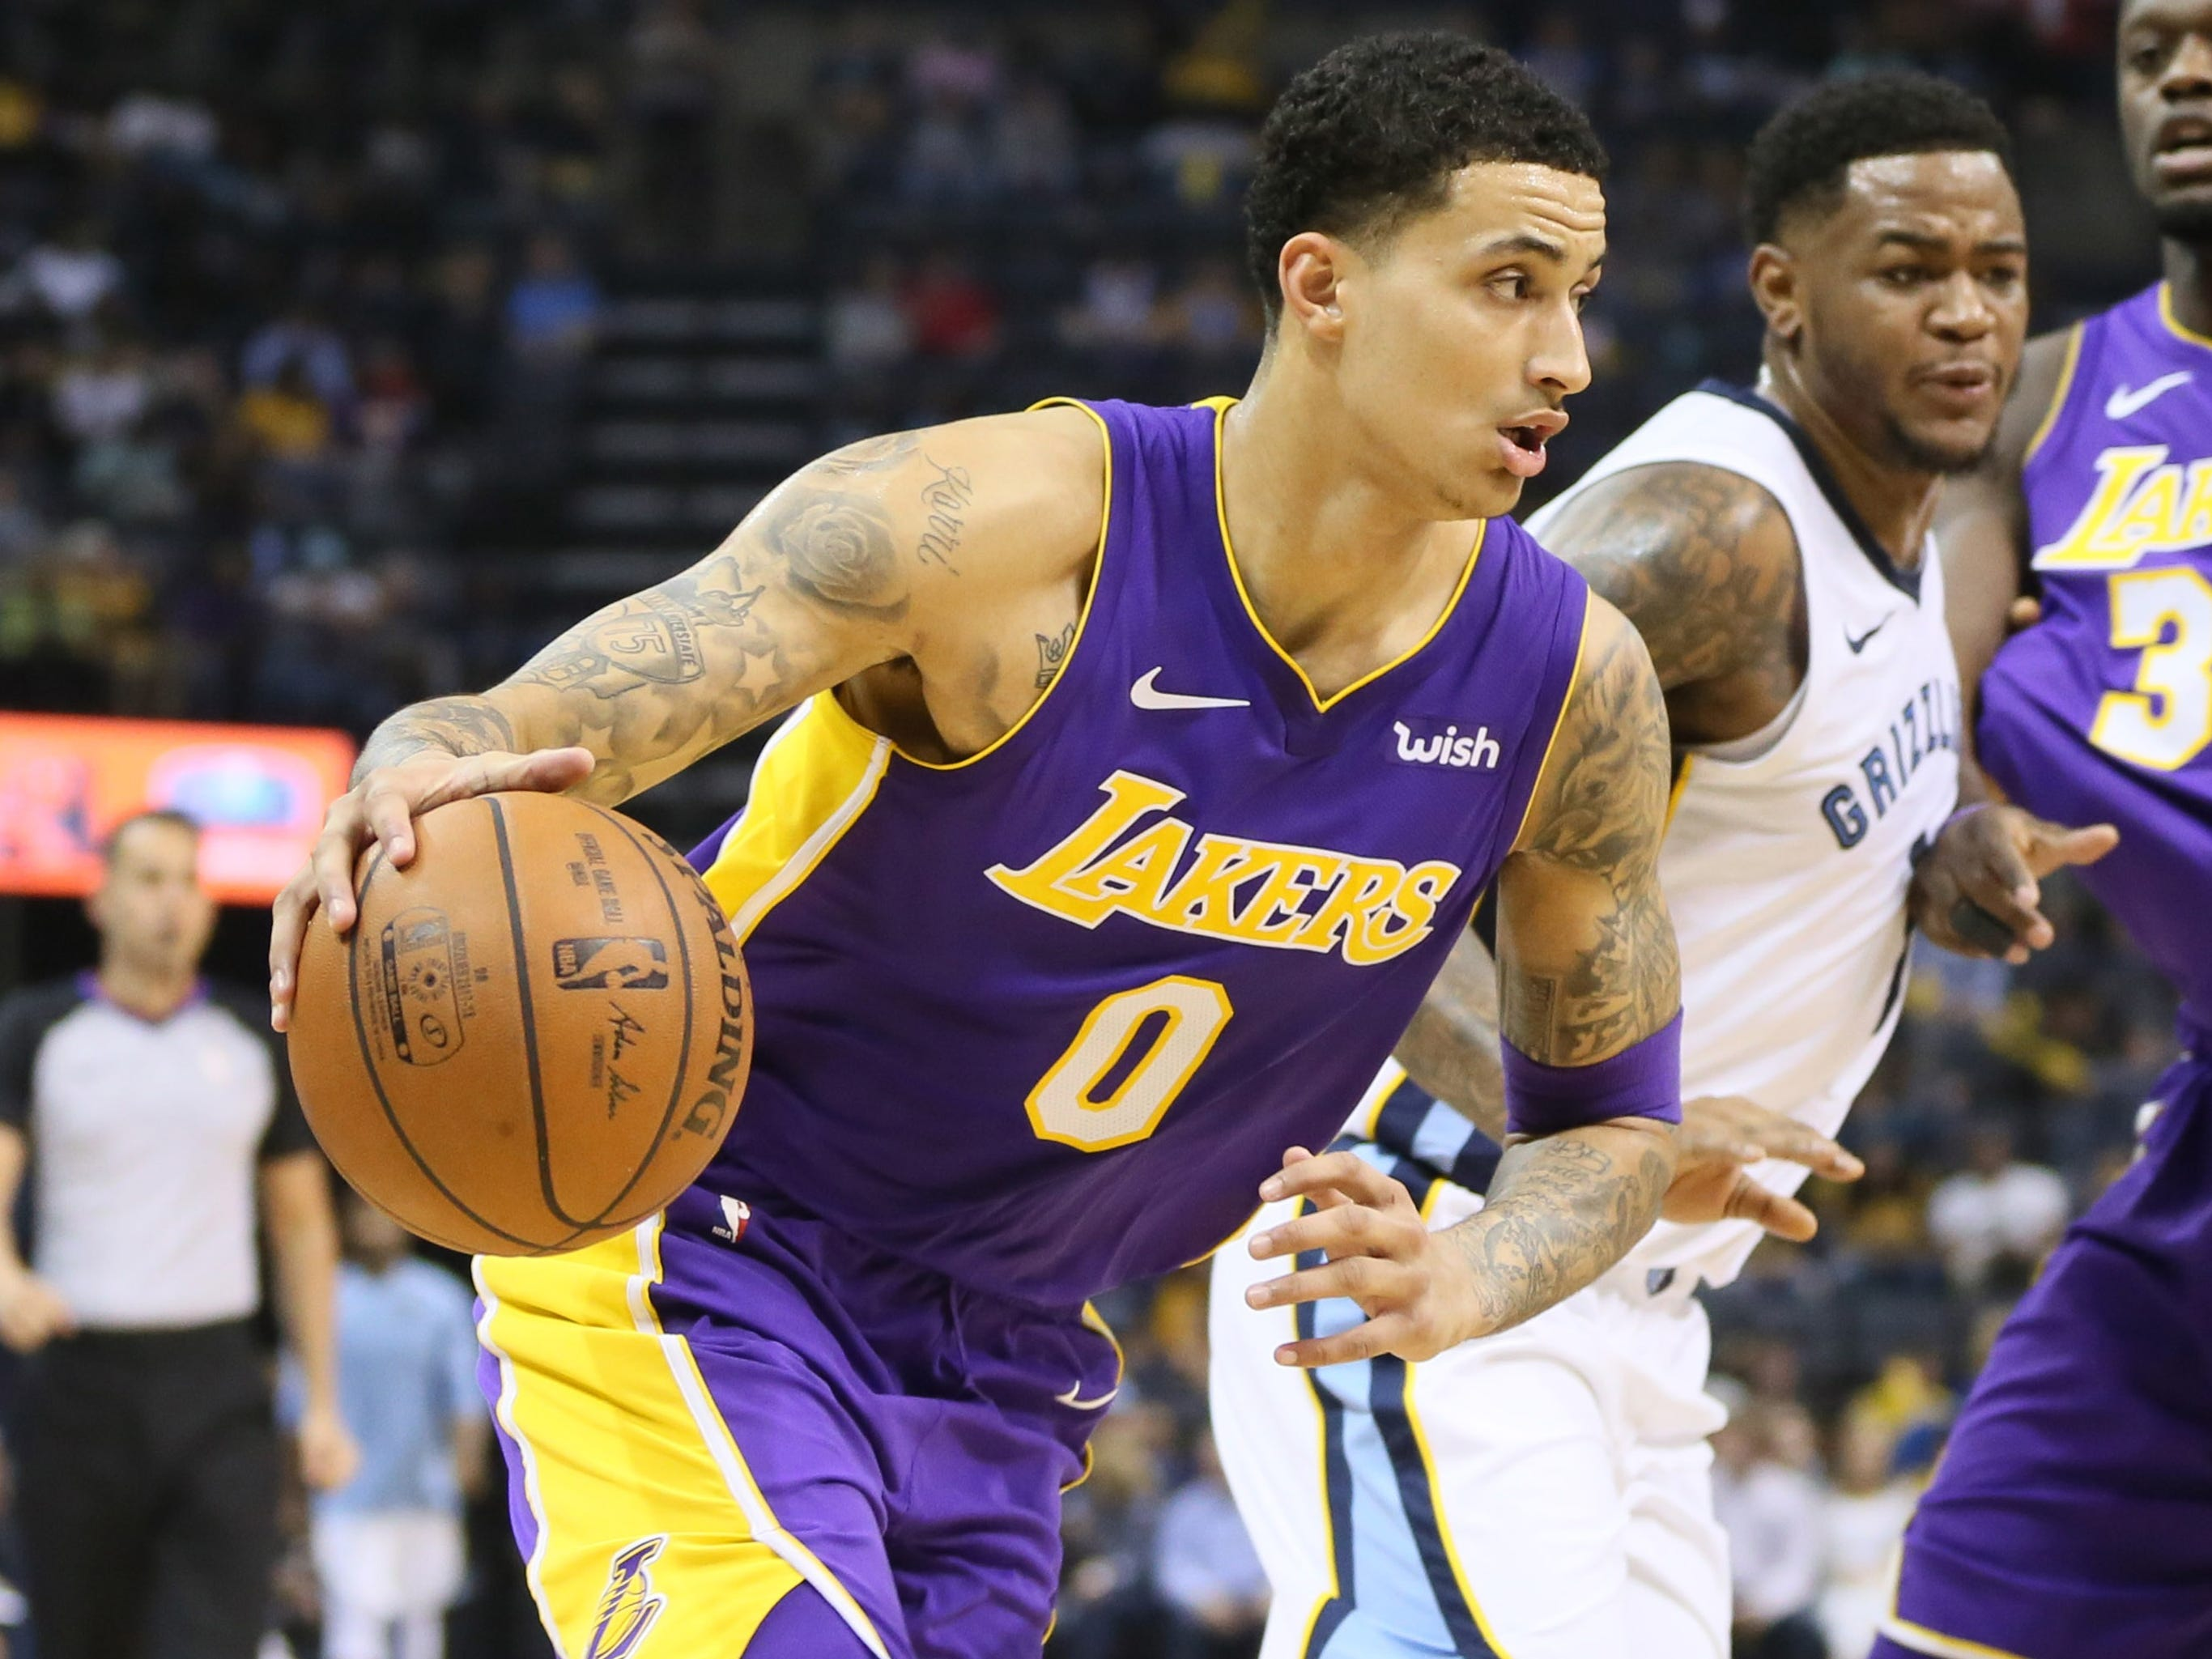 Kyle Kuzma, Los Angeles Lakers — 23 (born 7/24/1995)